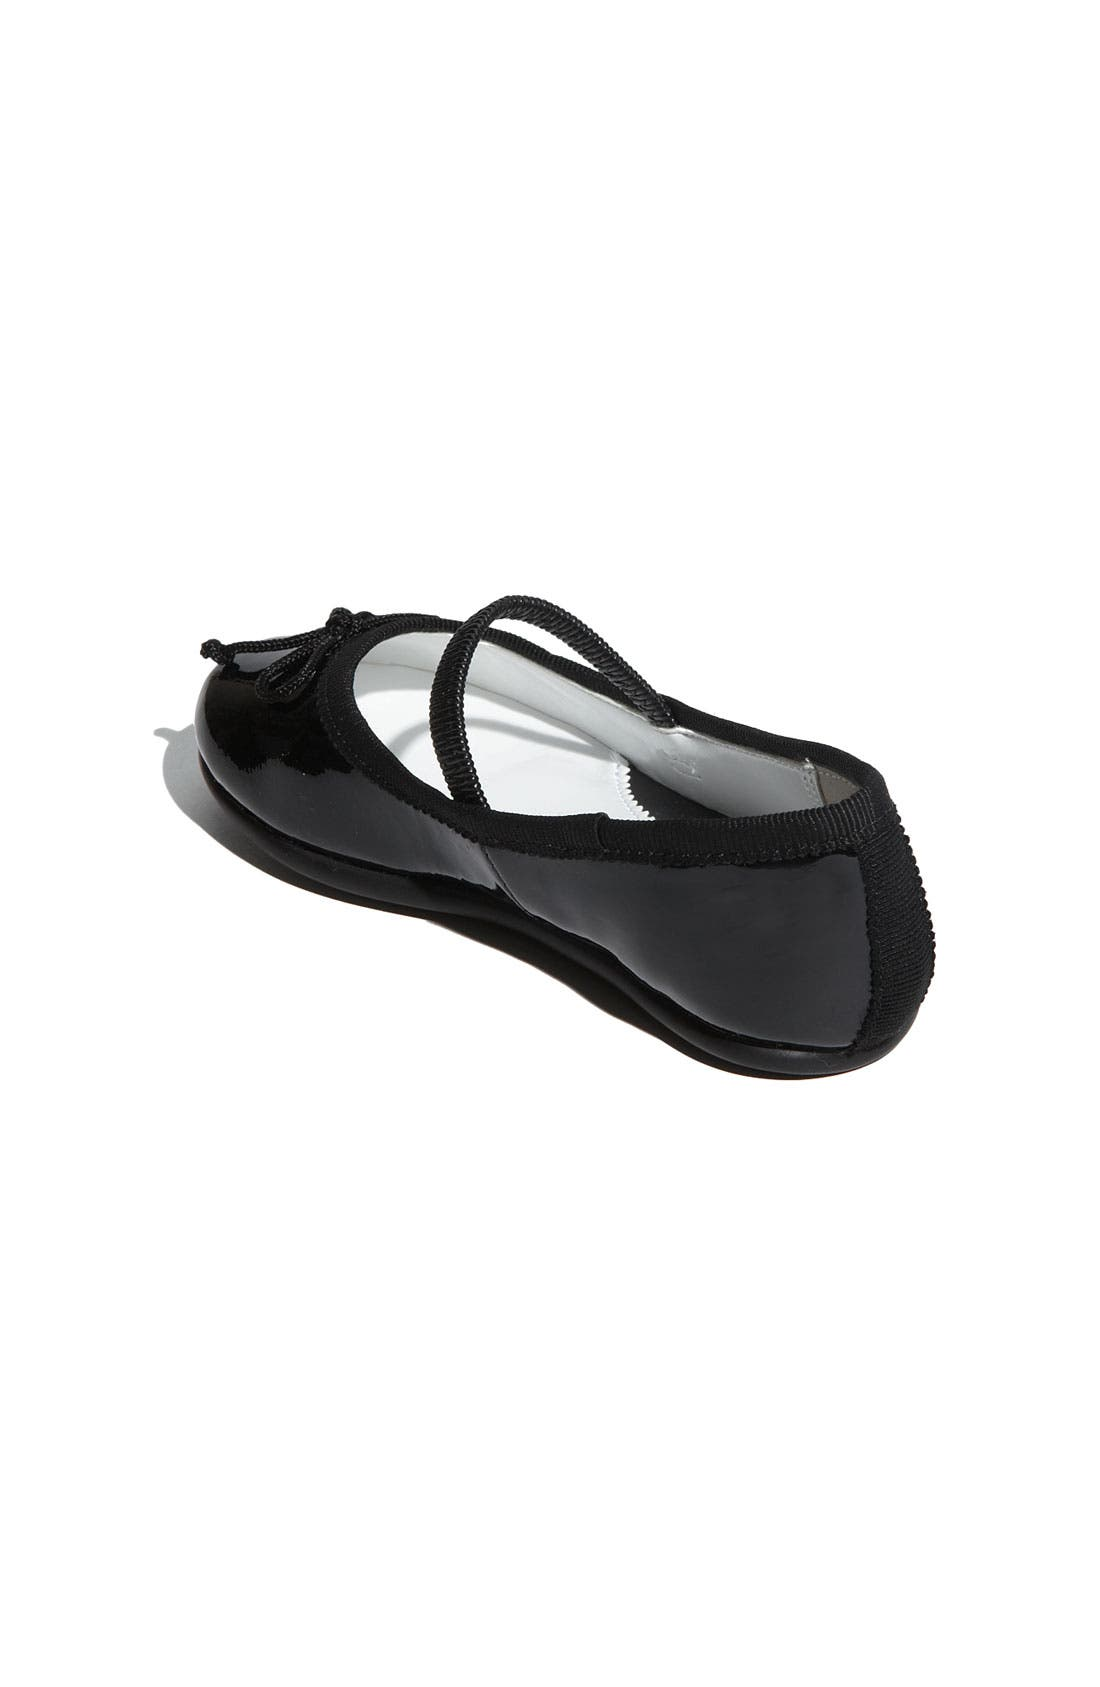 Alternate Image 3  - Nordstrom 'Bella' Ballet Flat (Walker, Toddler, Little Kid & Big Kid)